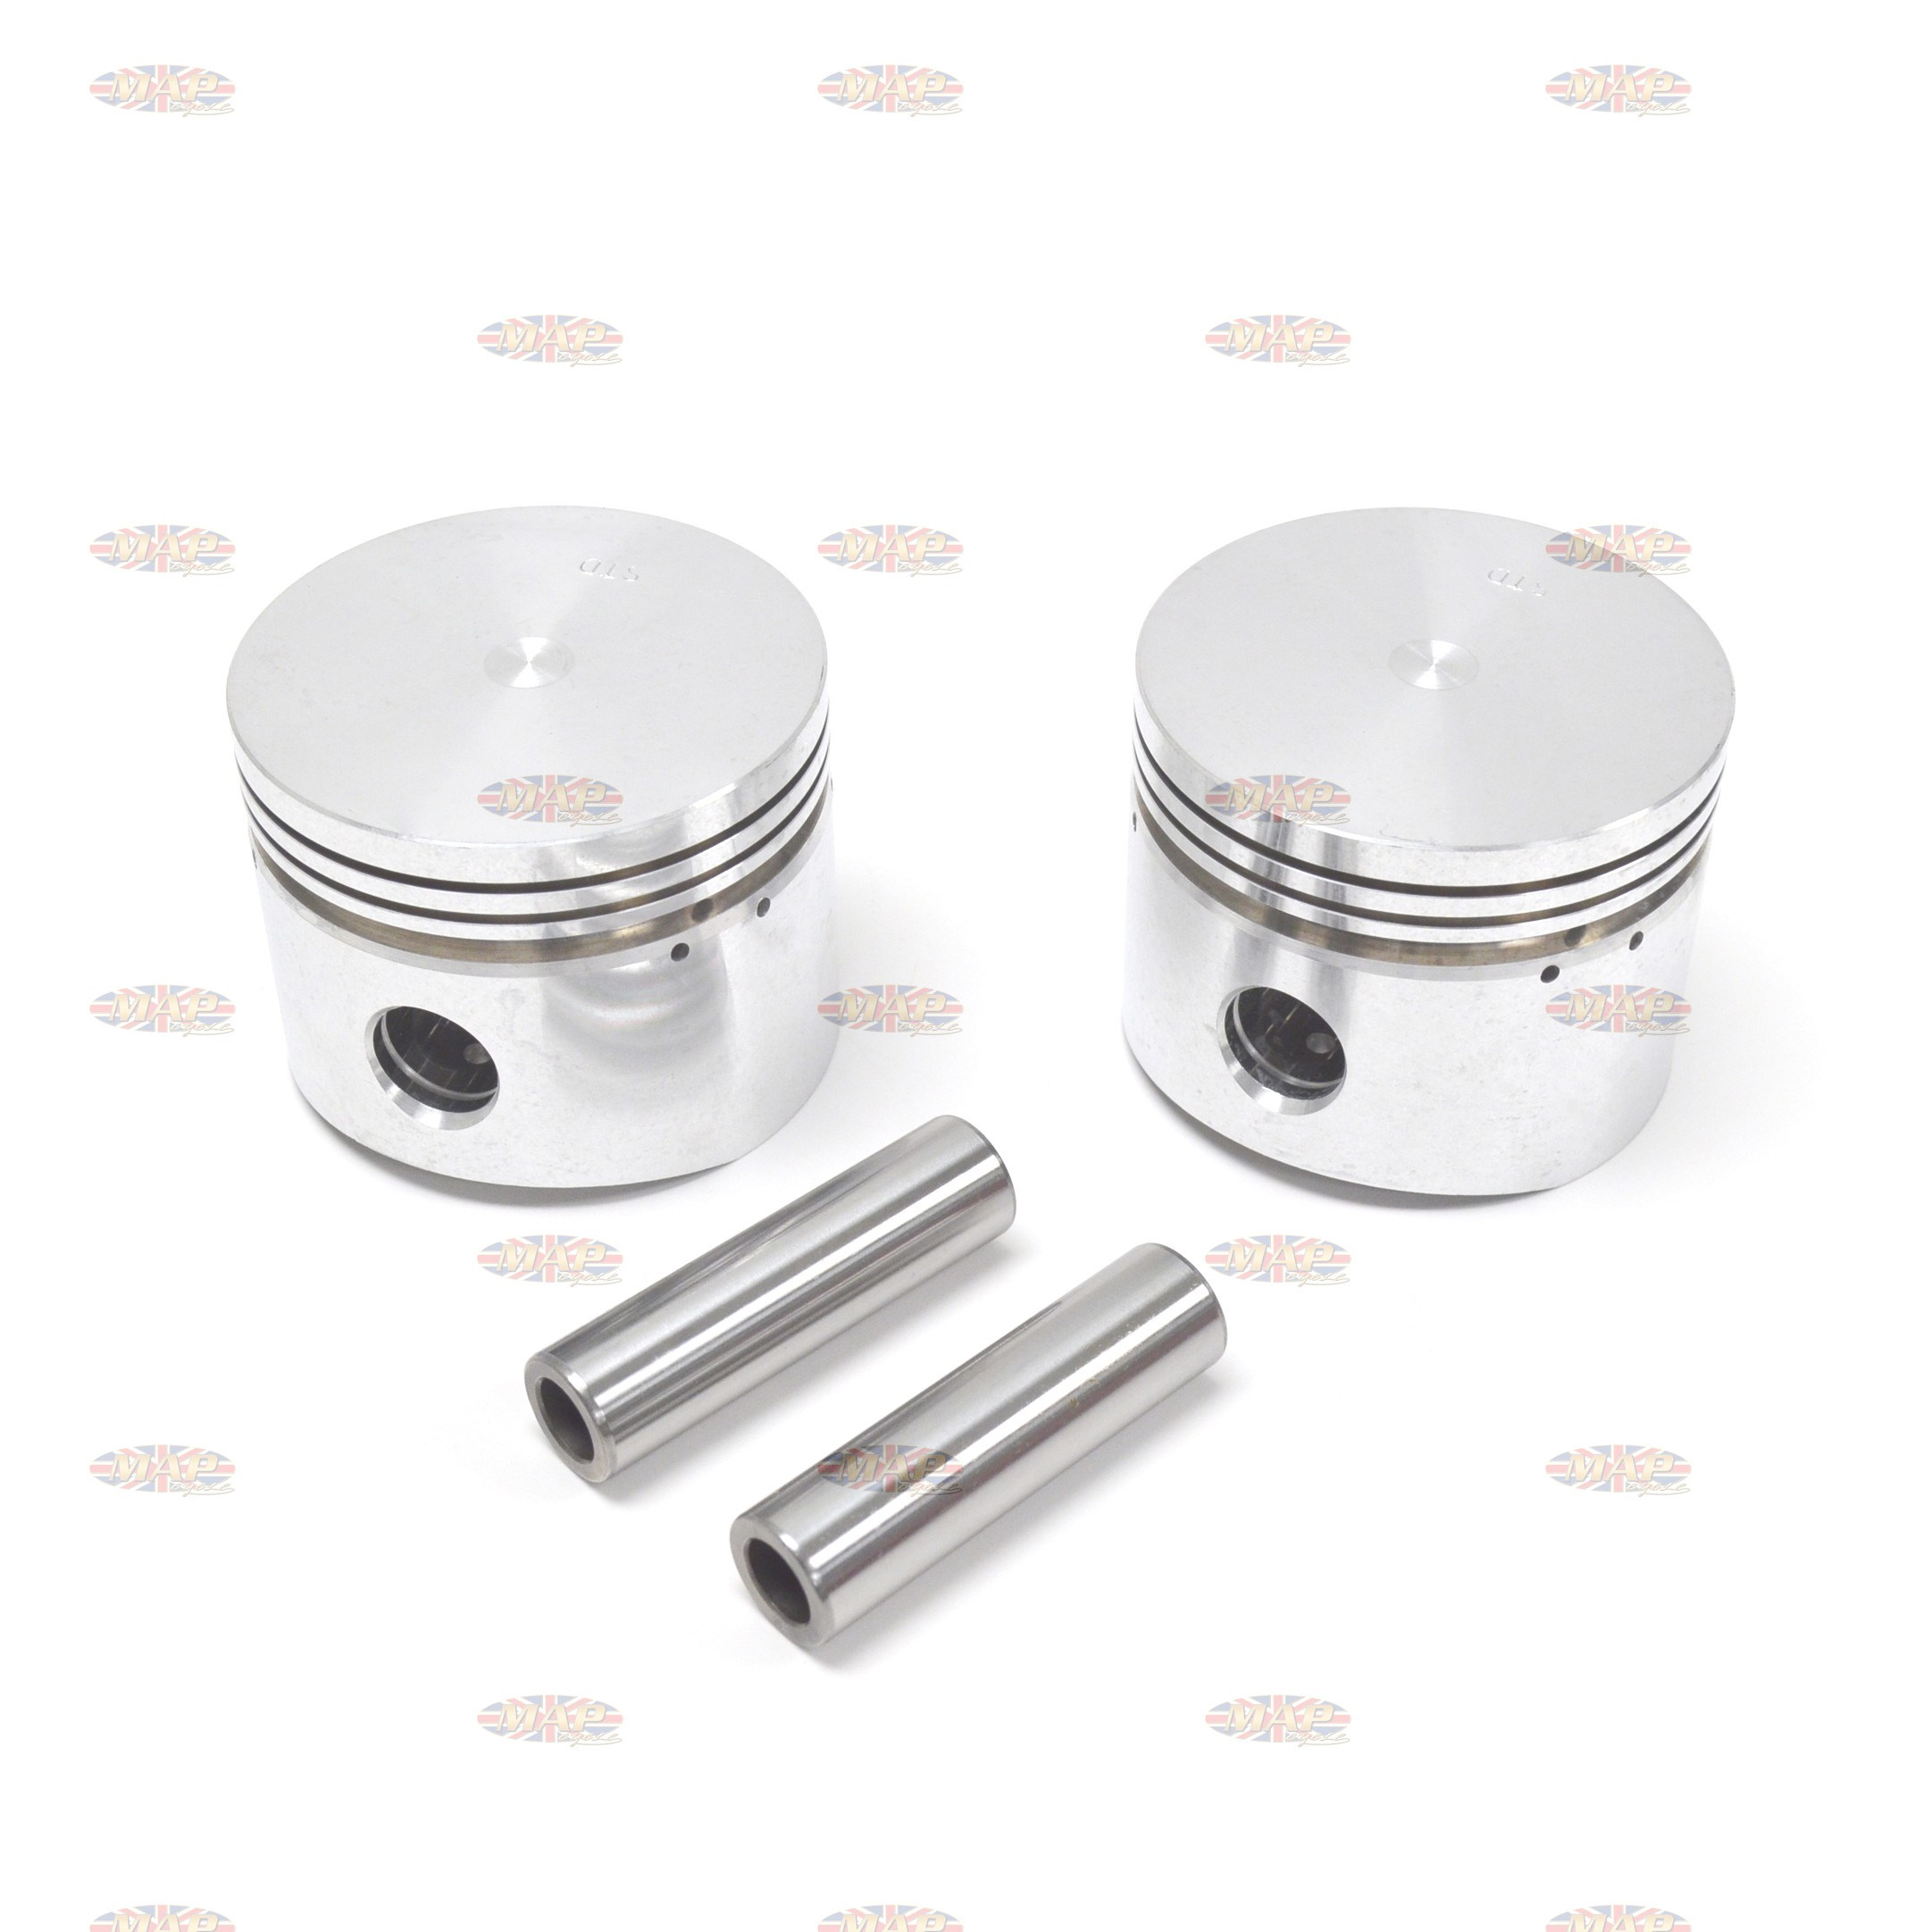 Norton 850 Commando Piston Set 19342/E-GRP